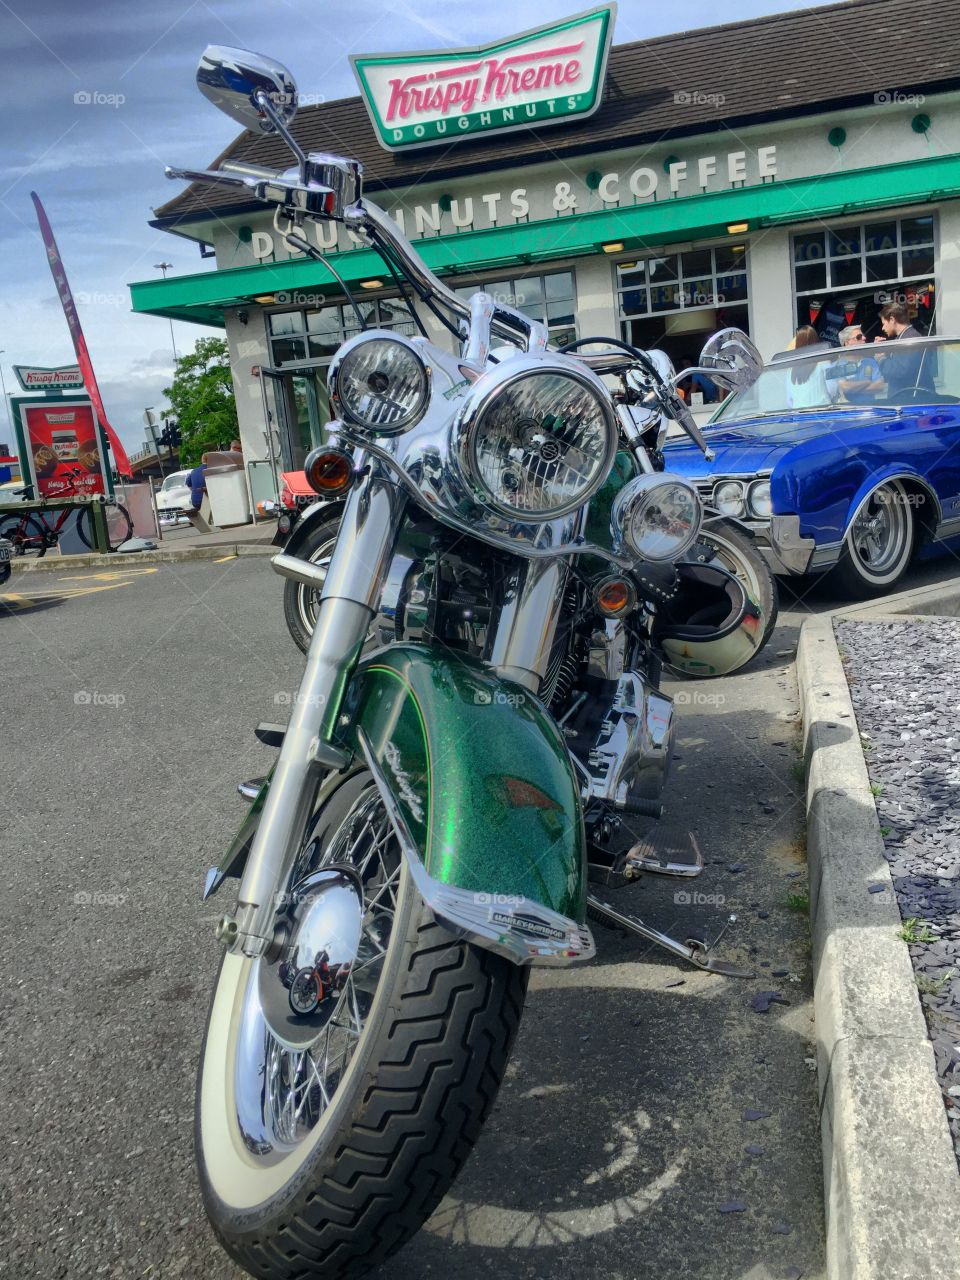 American motorcycle outside American diner